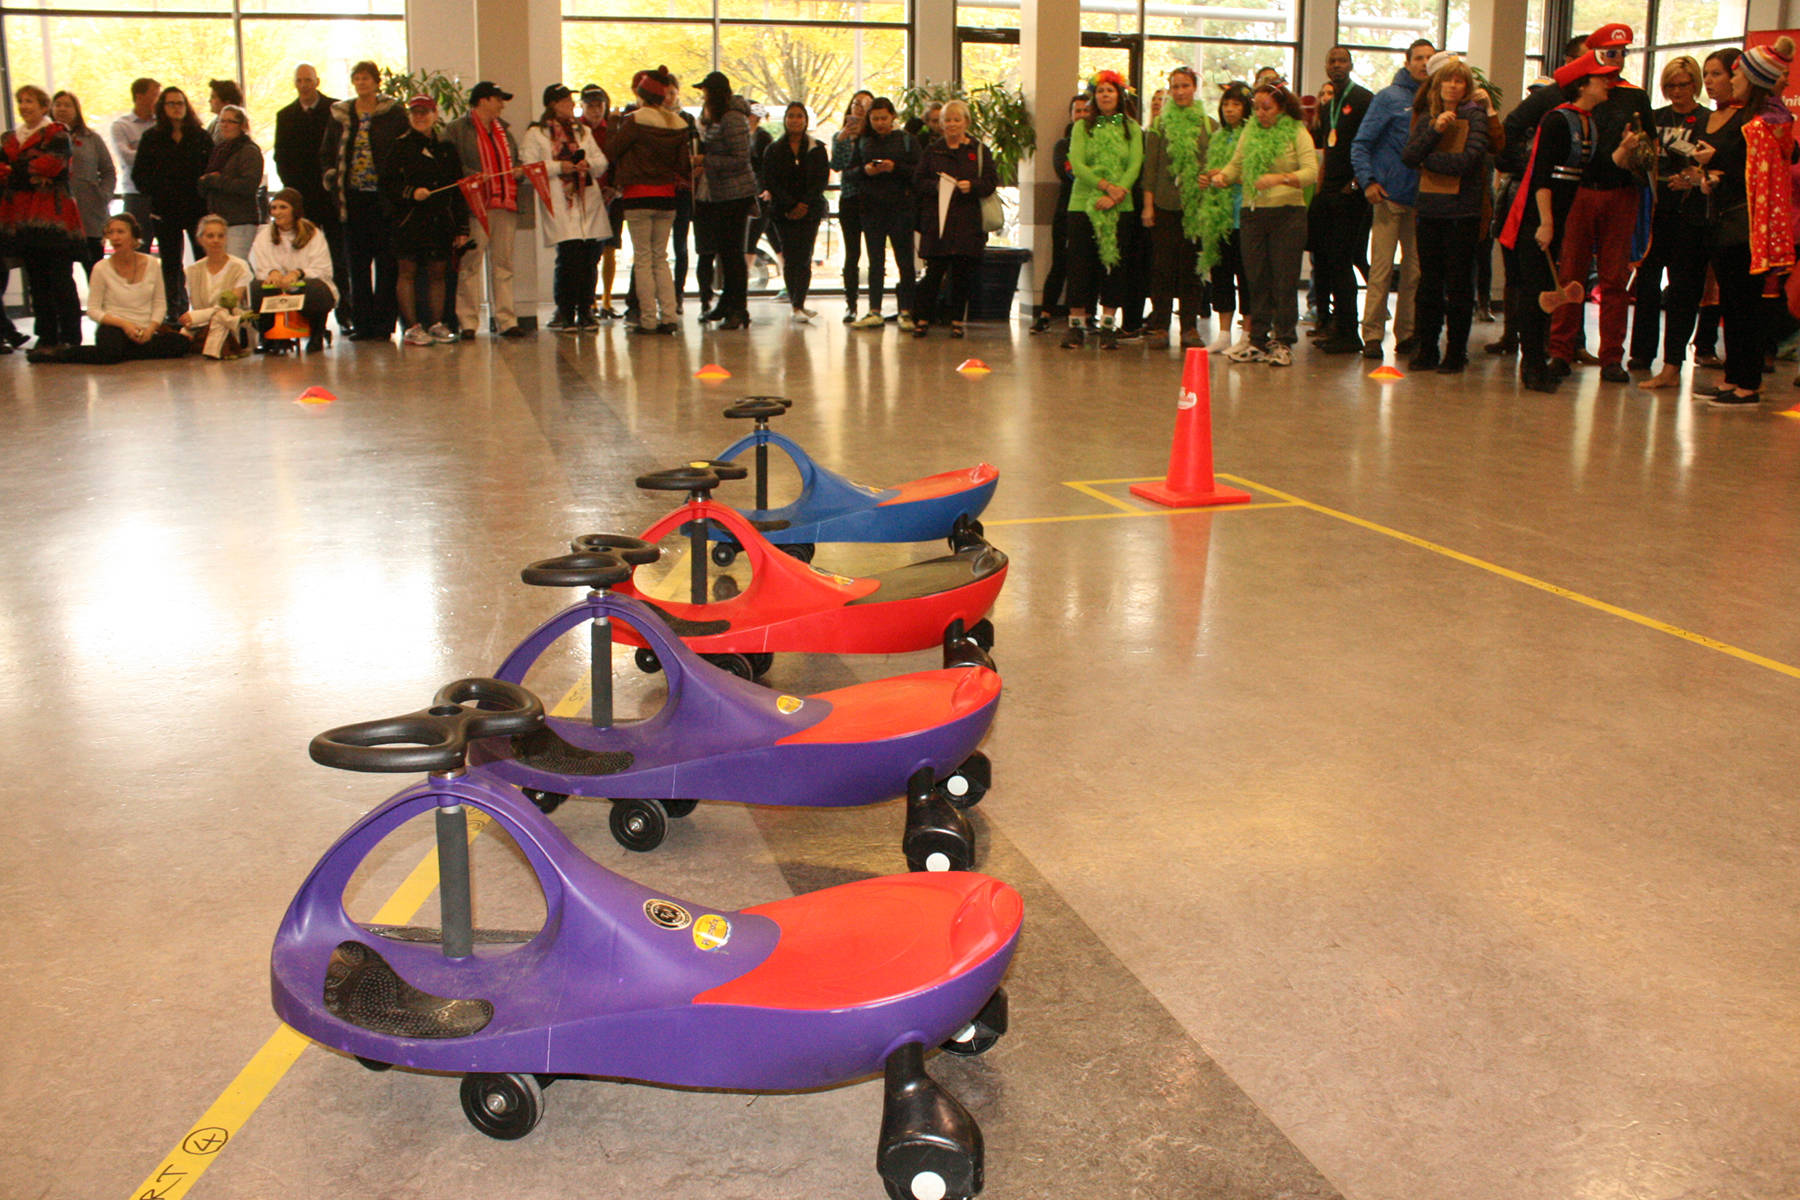 The PlasmaCars are ready to race at the fundraiser for United Way at UVic on Tuesday, Nov. 7. Travis Paterson/News Staff